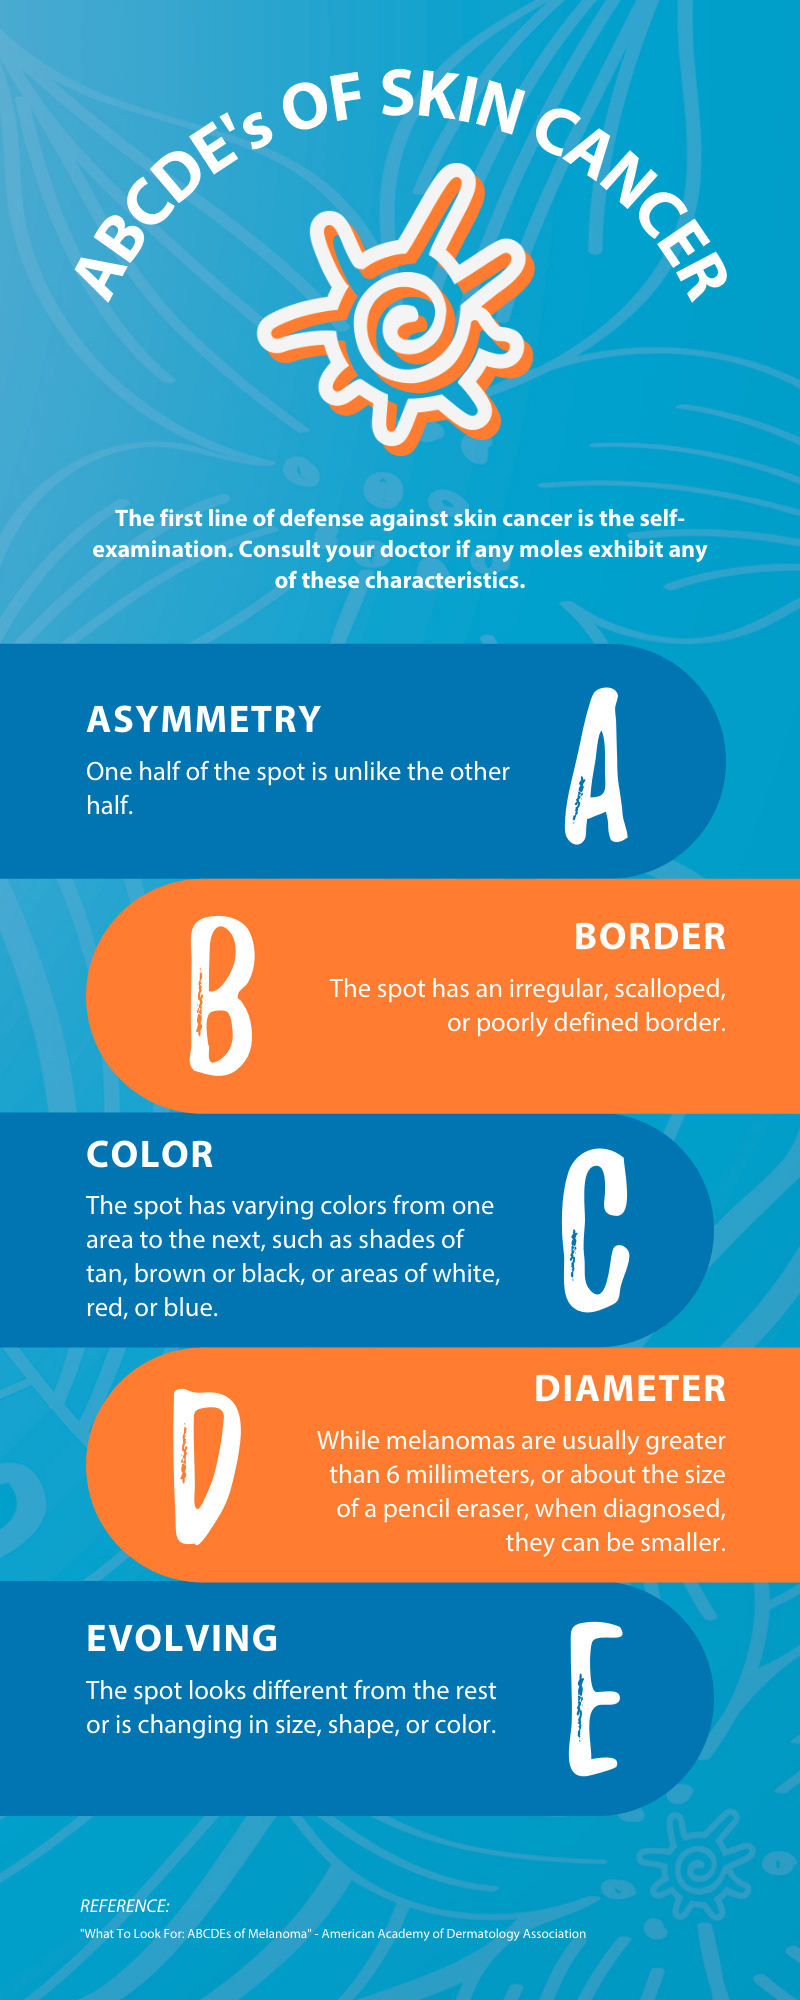 ABCDE's of Skin Cancer